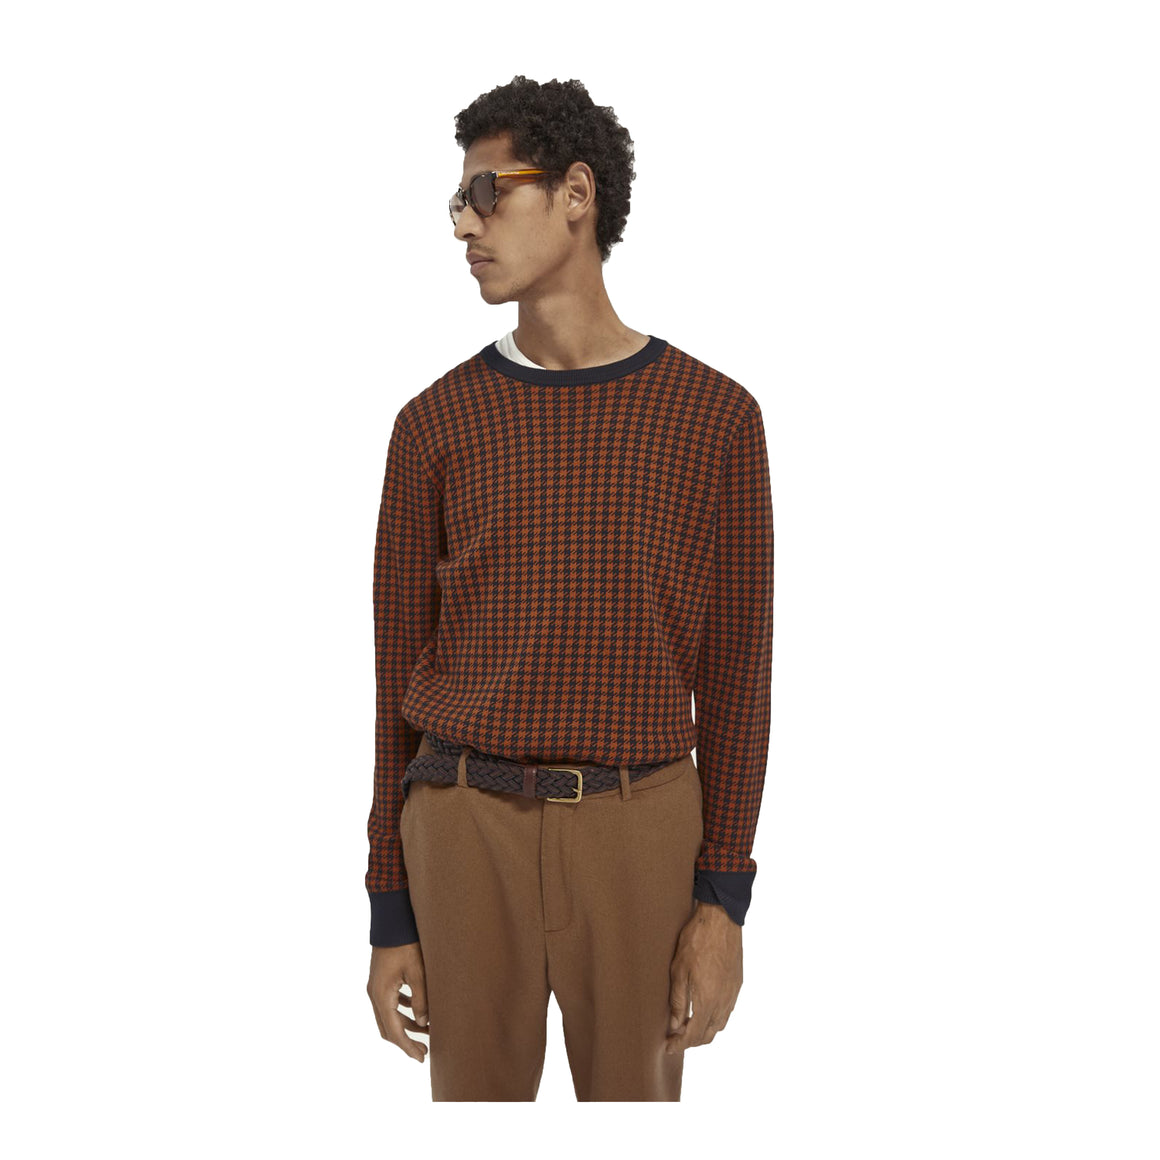 Dog Tooth Check Jumper for Men in Navy & Orange